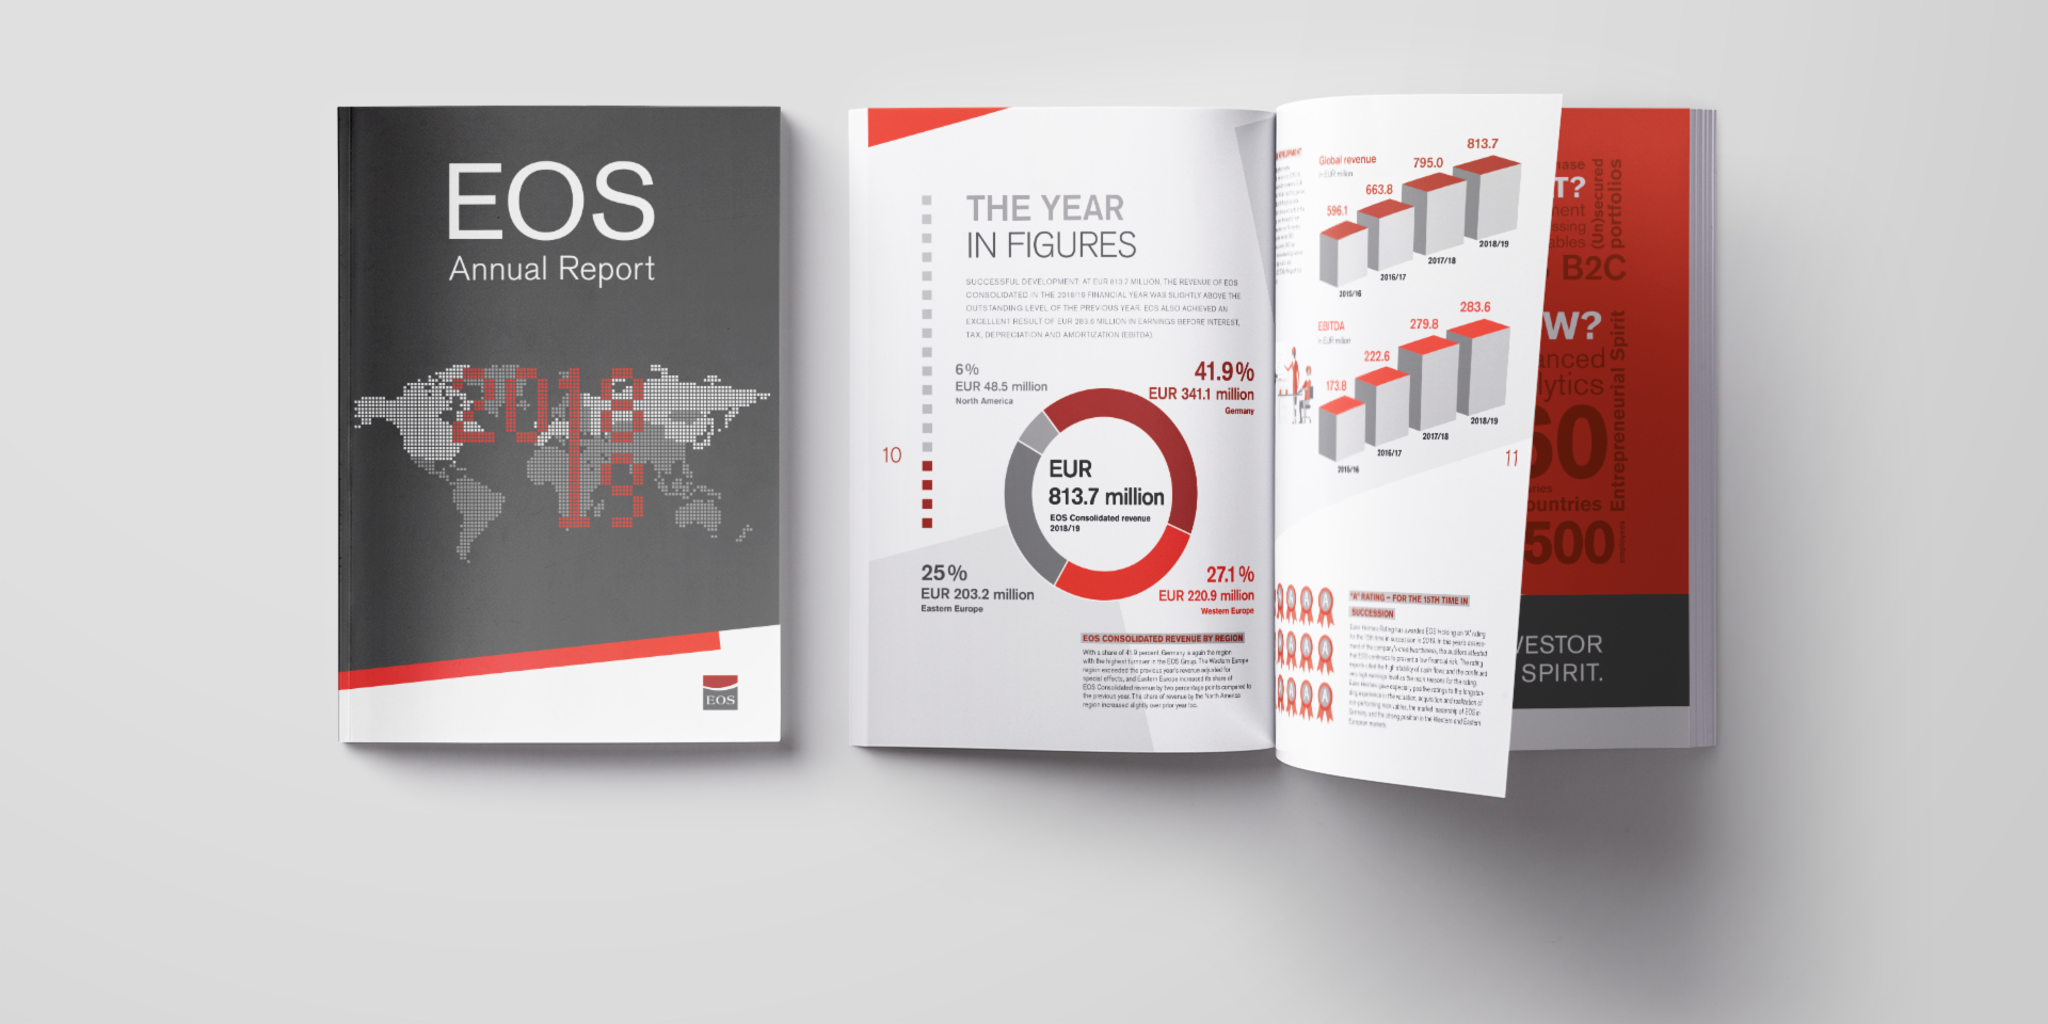 EOS Annual Report 2018/19: Revenue by regions